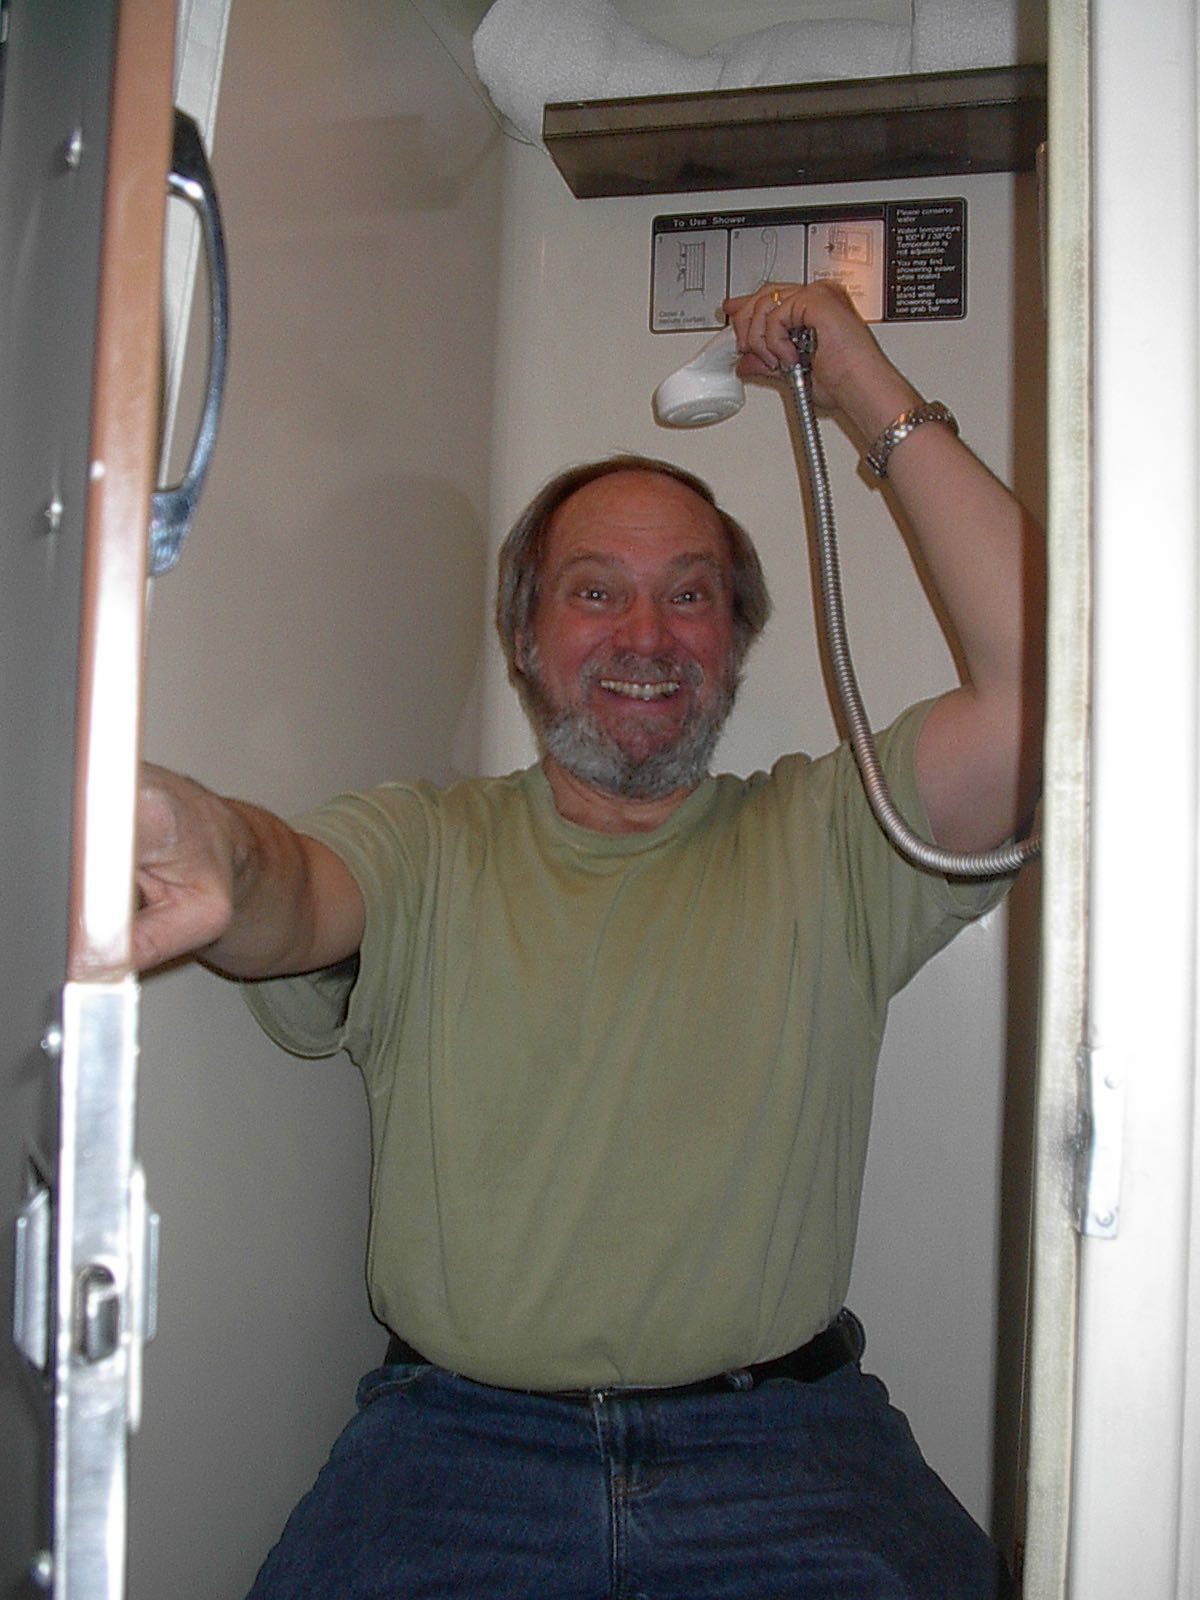 On Southwest Chief Train Dennis Sitting On Toilet In Shower